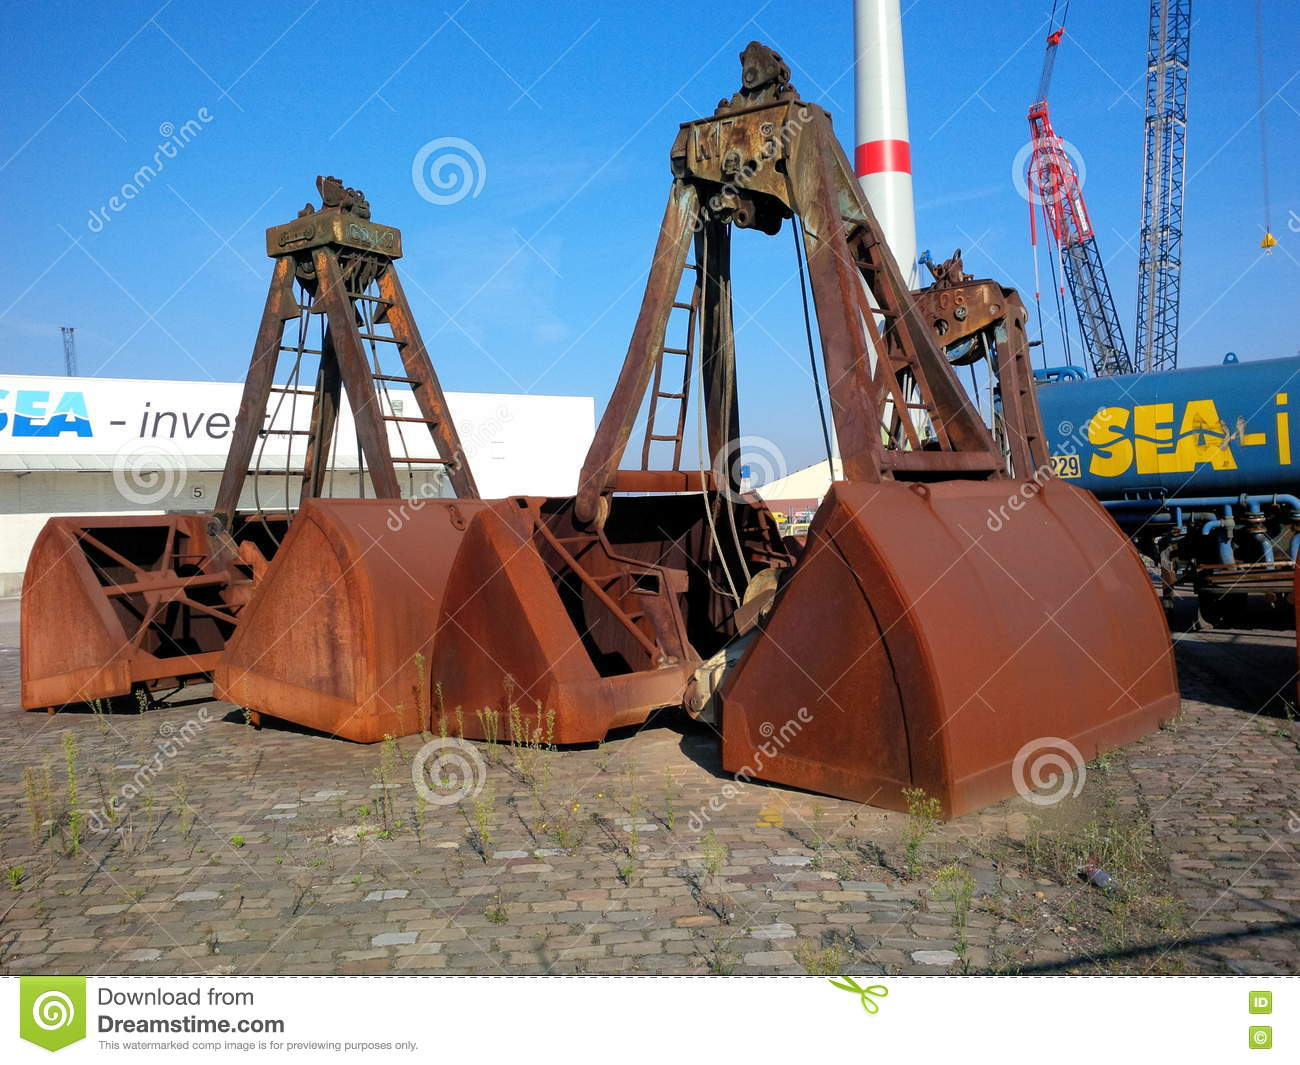 Big claws editorial stock image  Image of shovel, clamshell